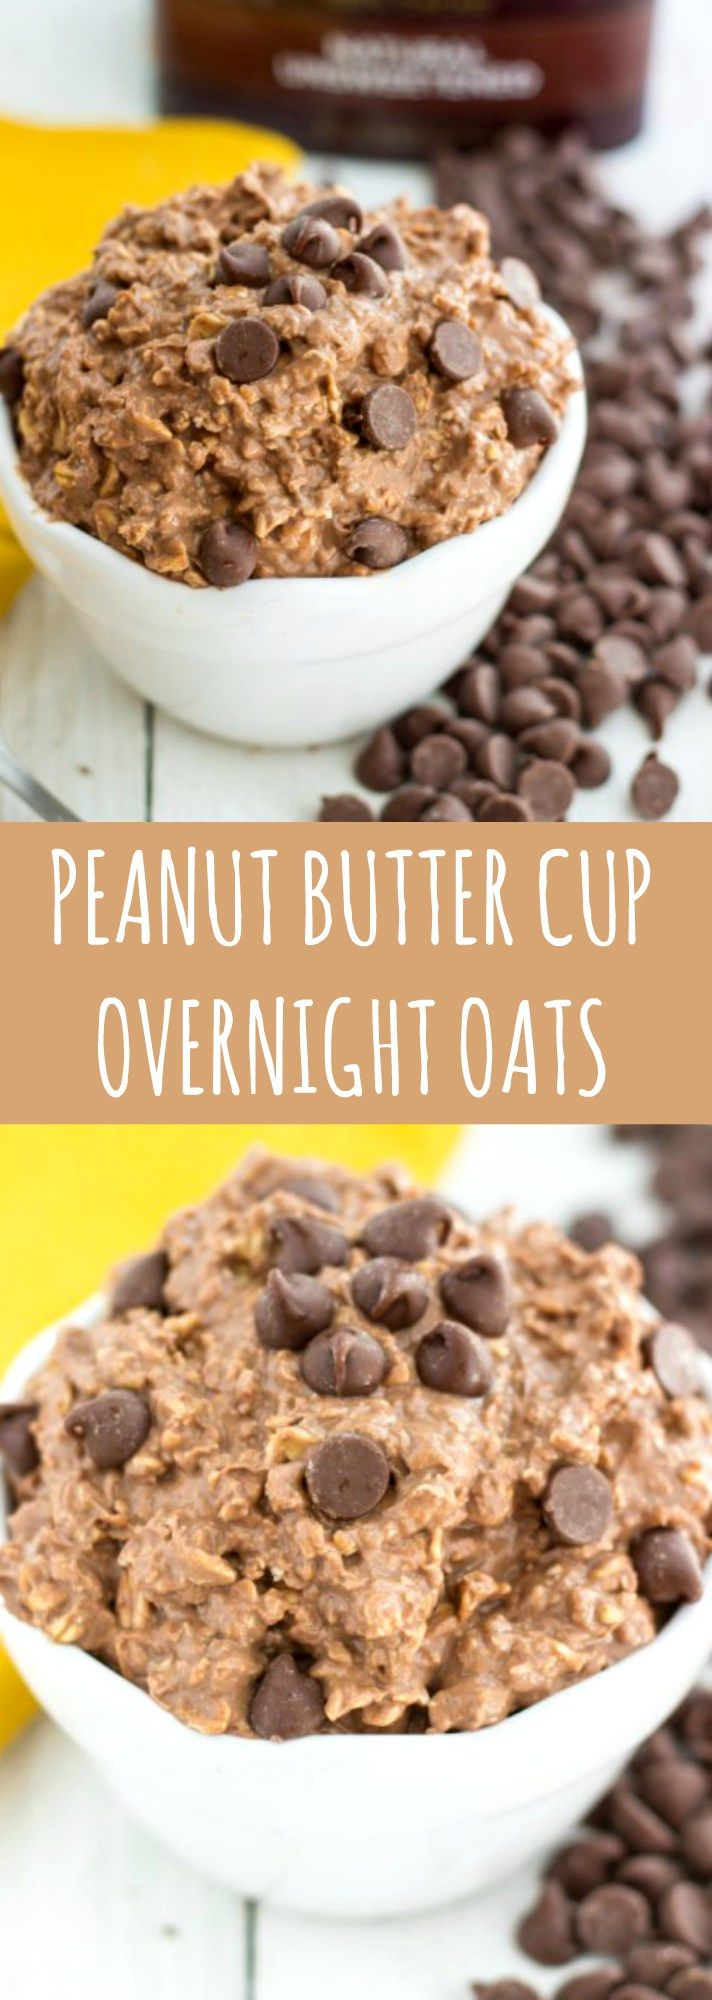 THE BEST OVERNIGHT OATS -- PEANUT BUTTER CUP FLAVORED  Substitute almond butter and cocoa nibs to make compliant phase 3